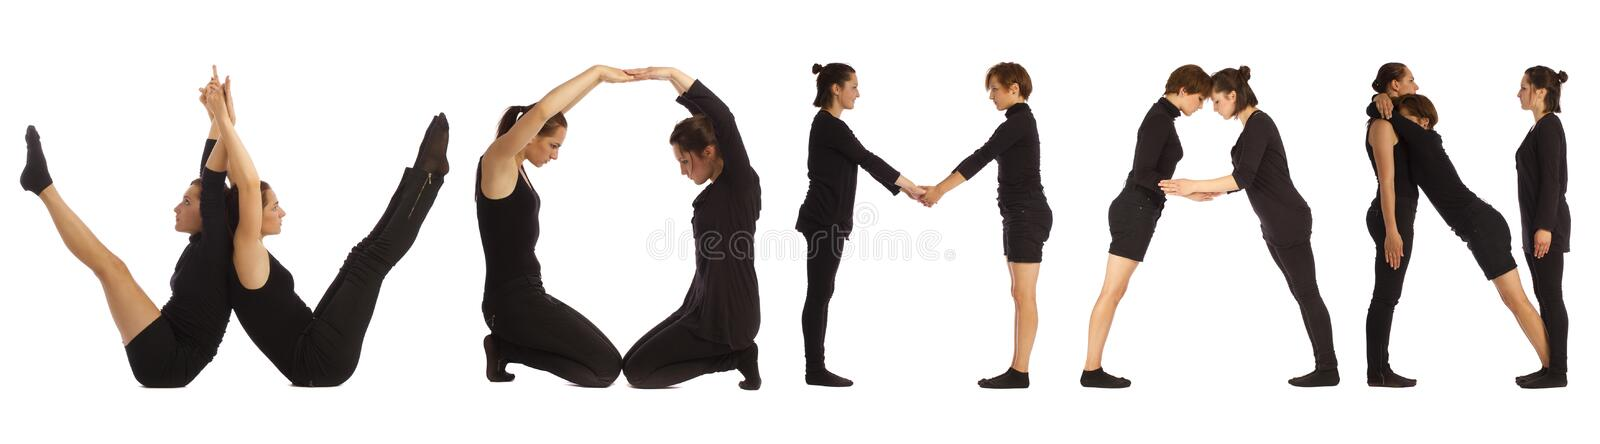 Black dressed people forming WOMAN word royalty free stock photos